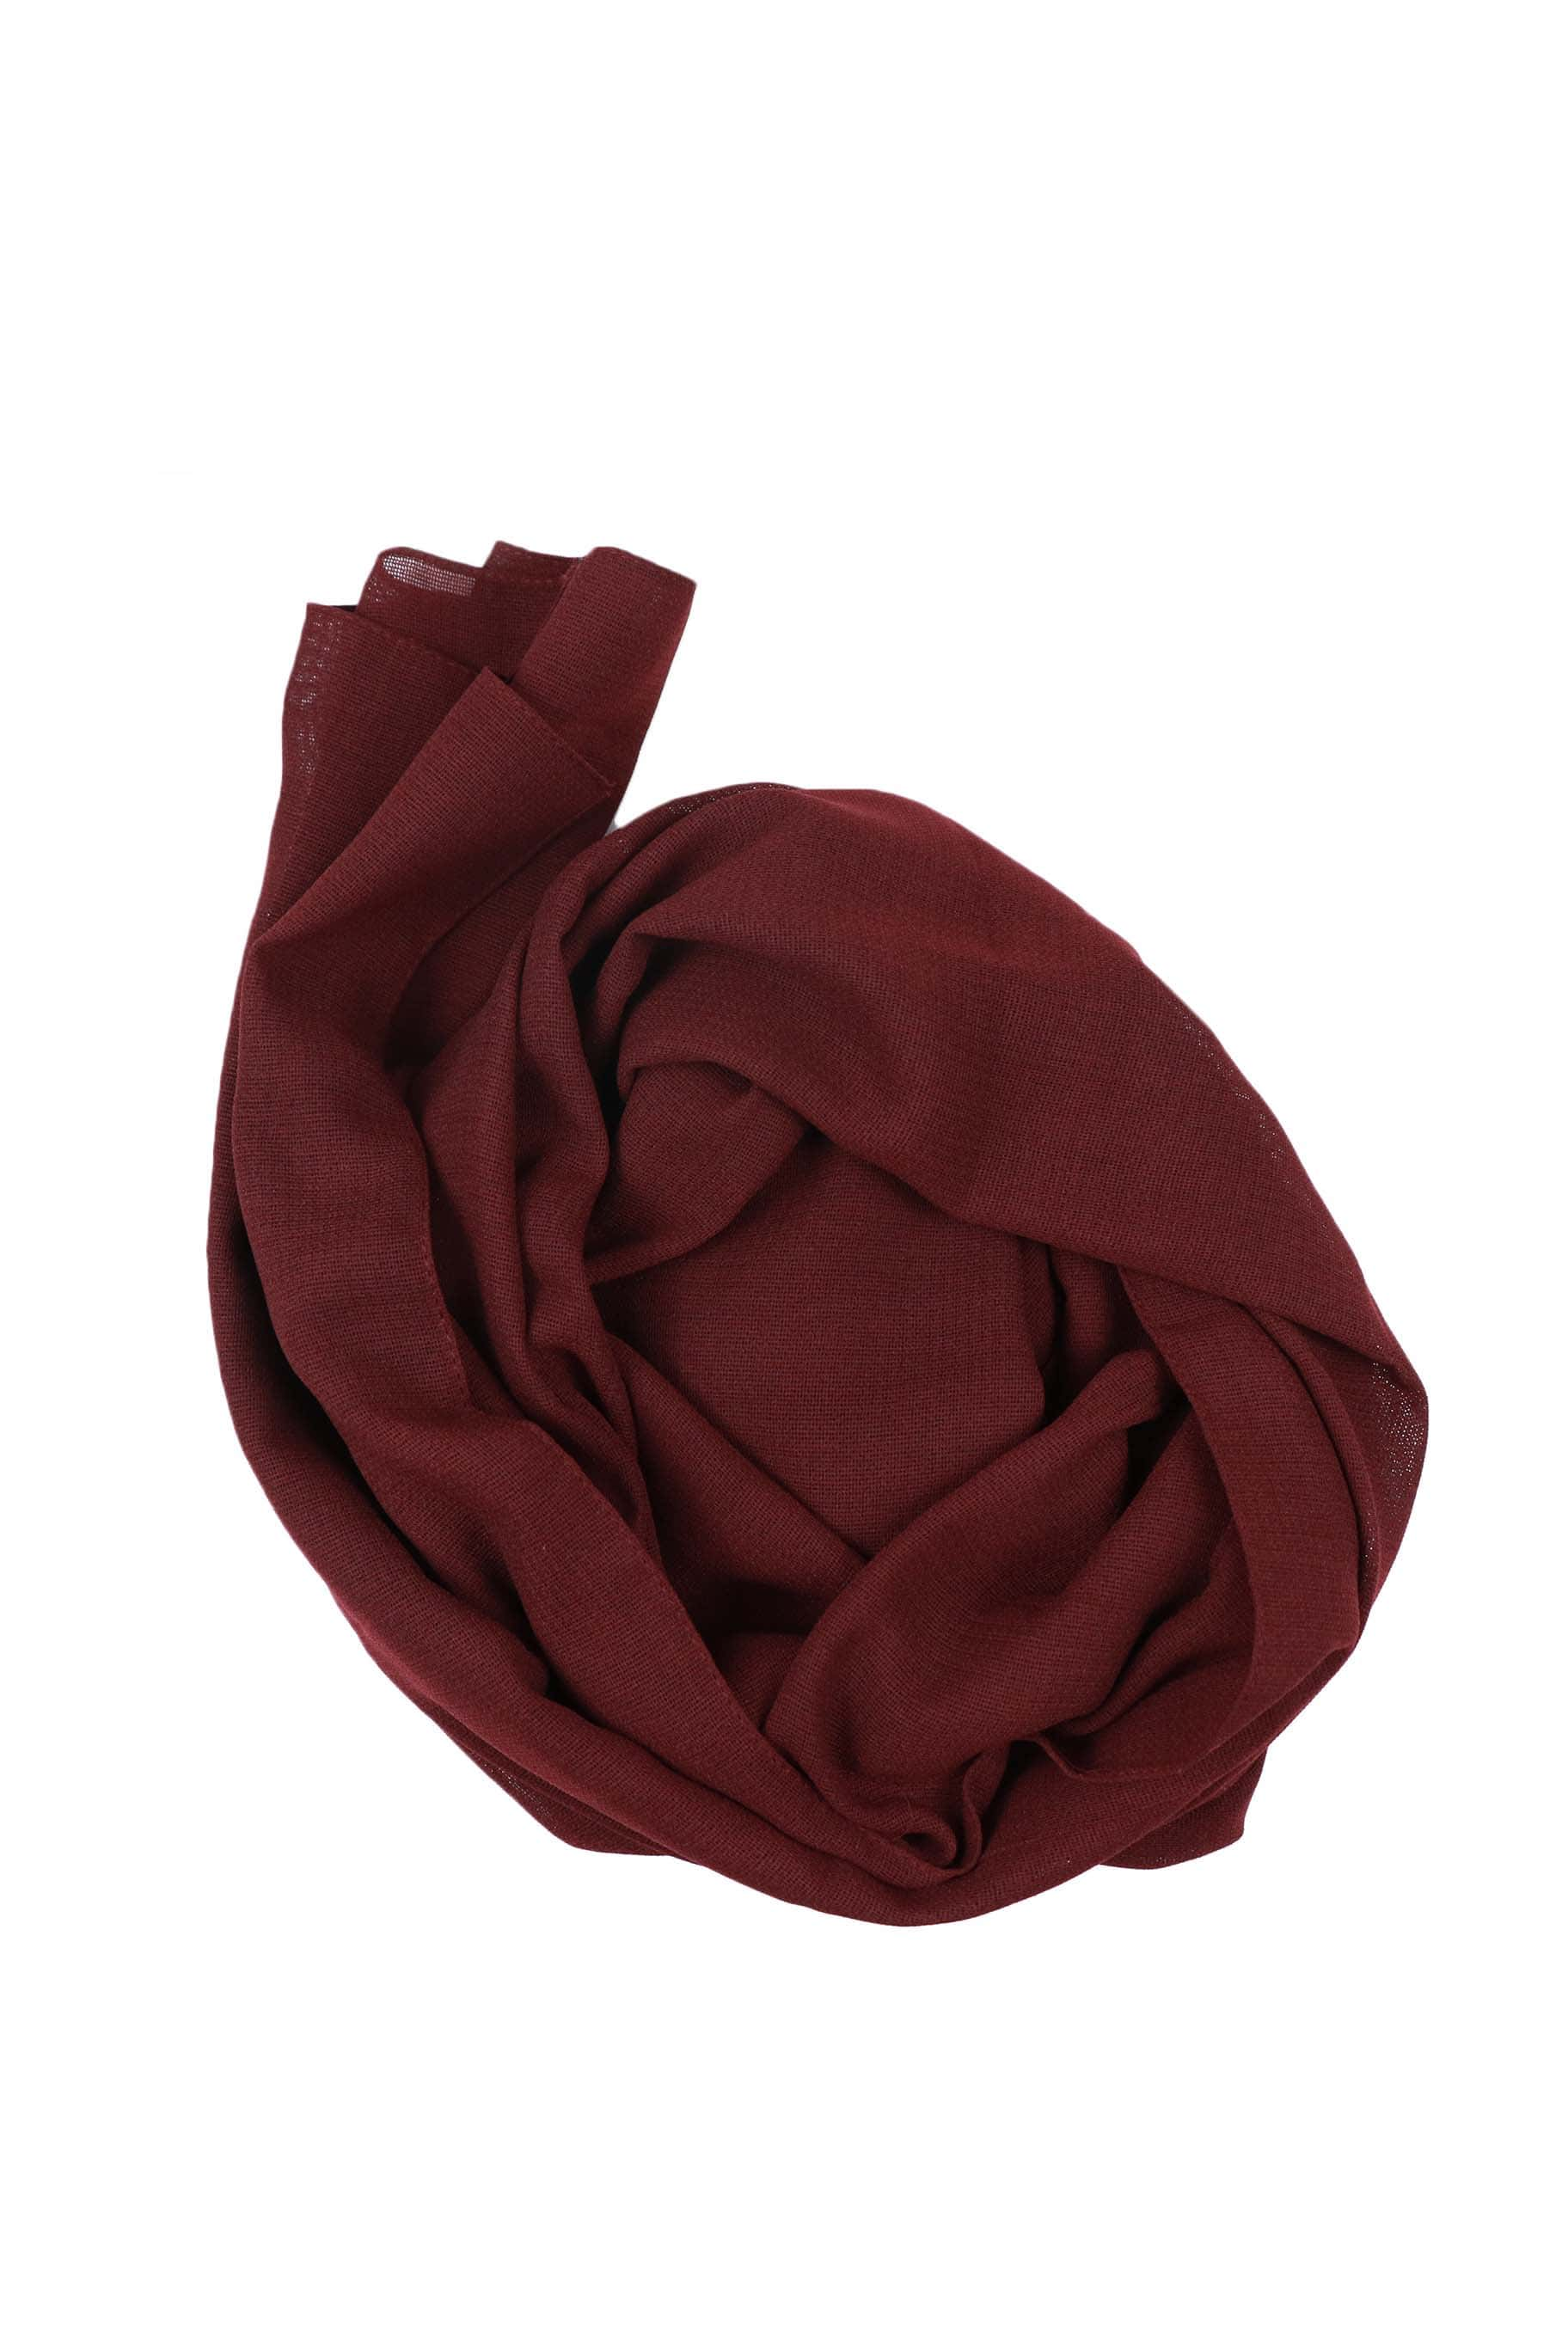 Plump Maroon Jute Cotton - Jute-Cotton Hijab - The Modest Look